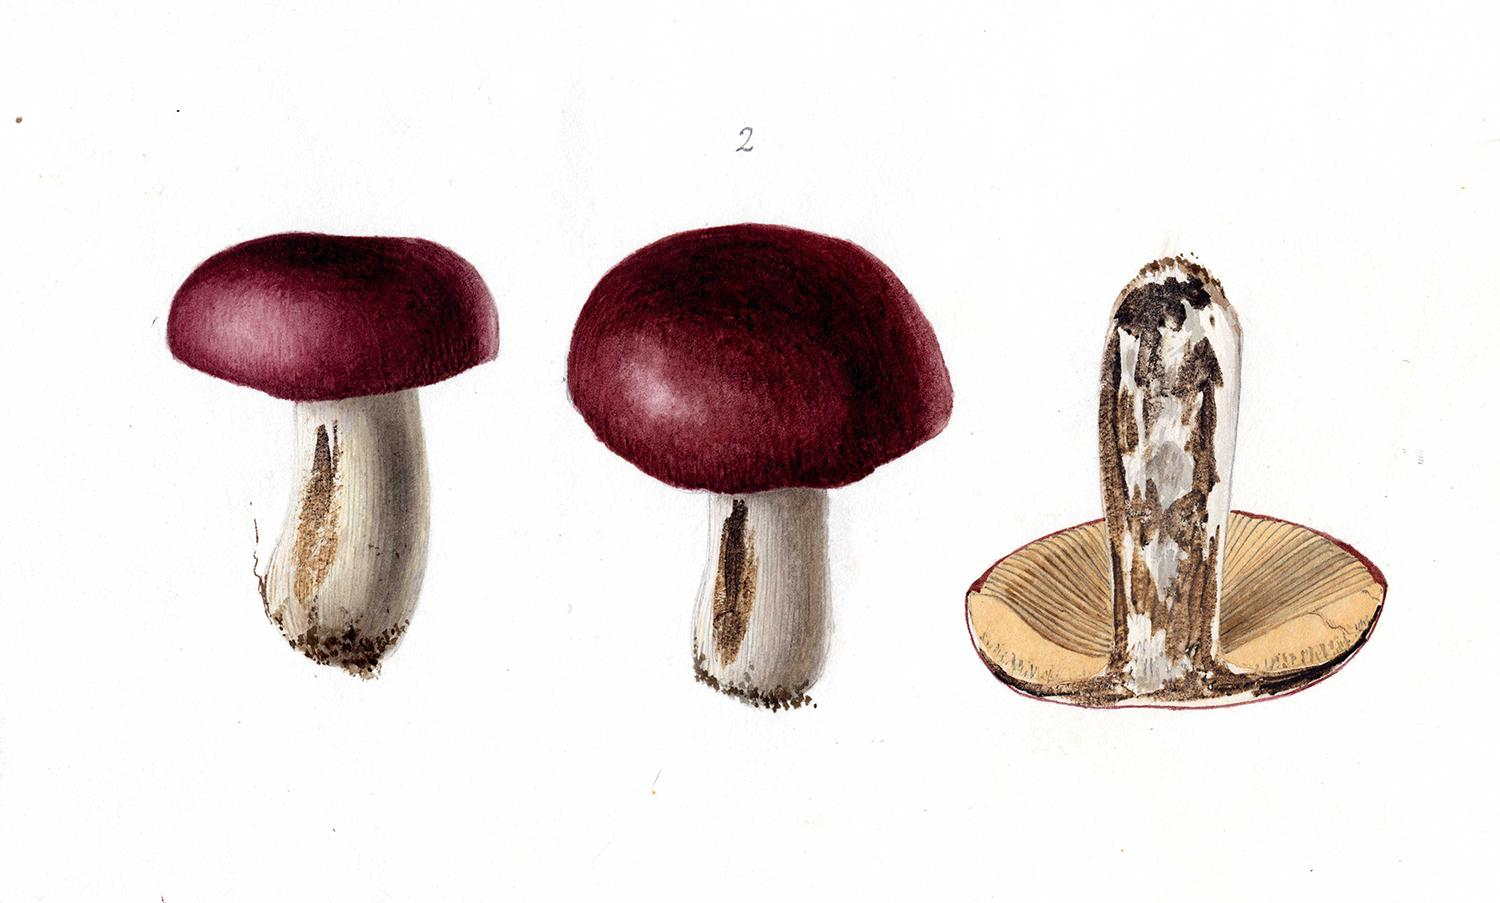 painting of fungi by georges du noyer